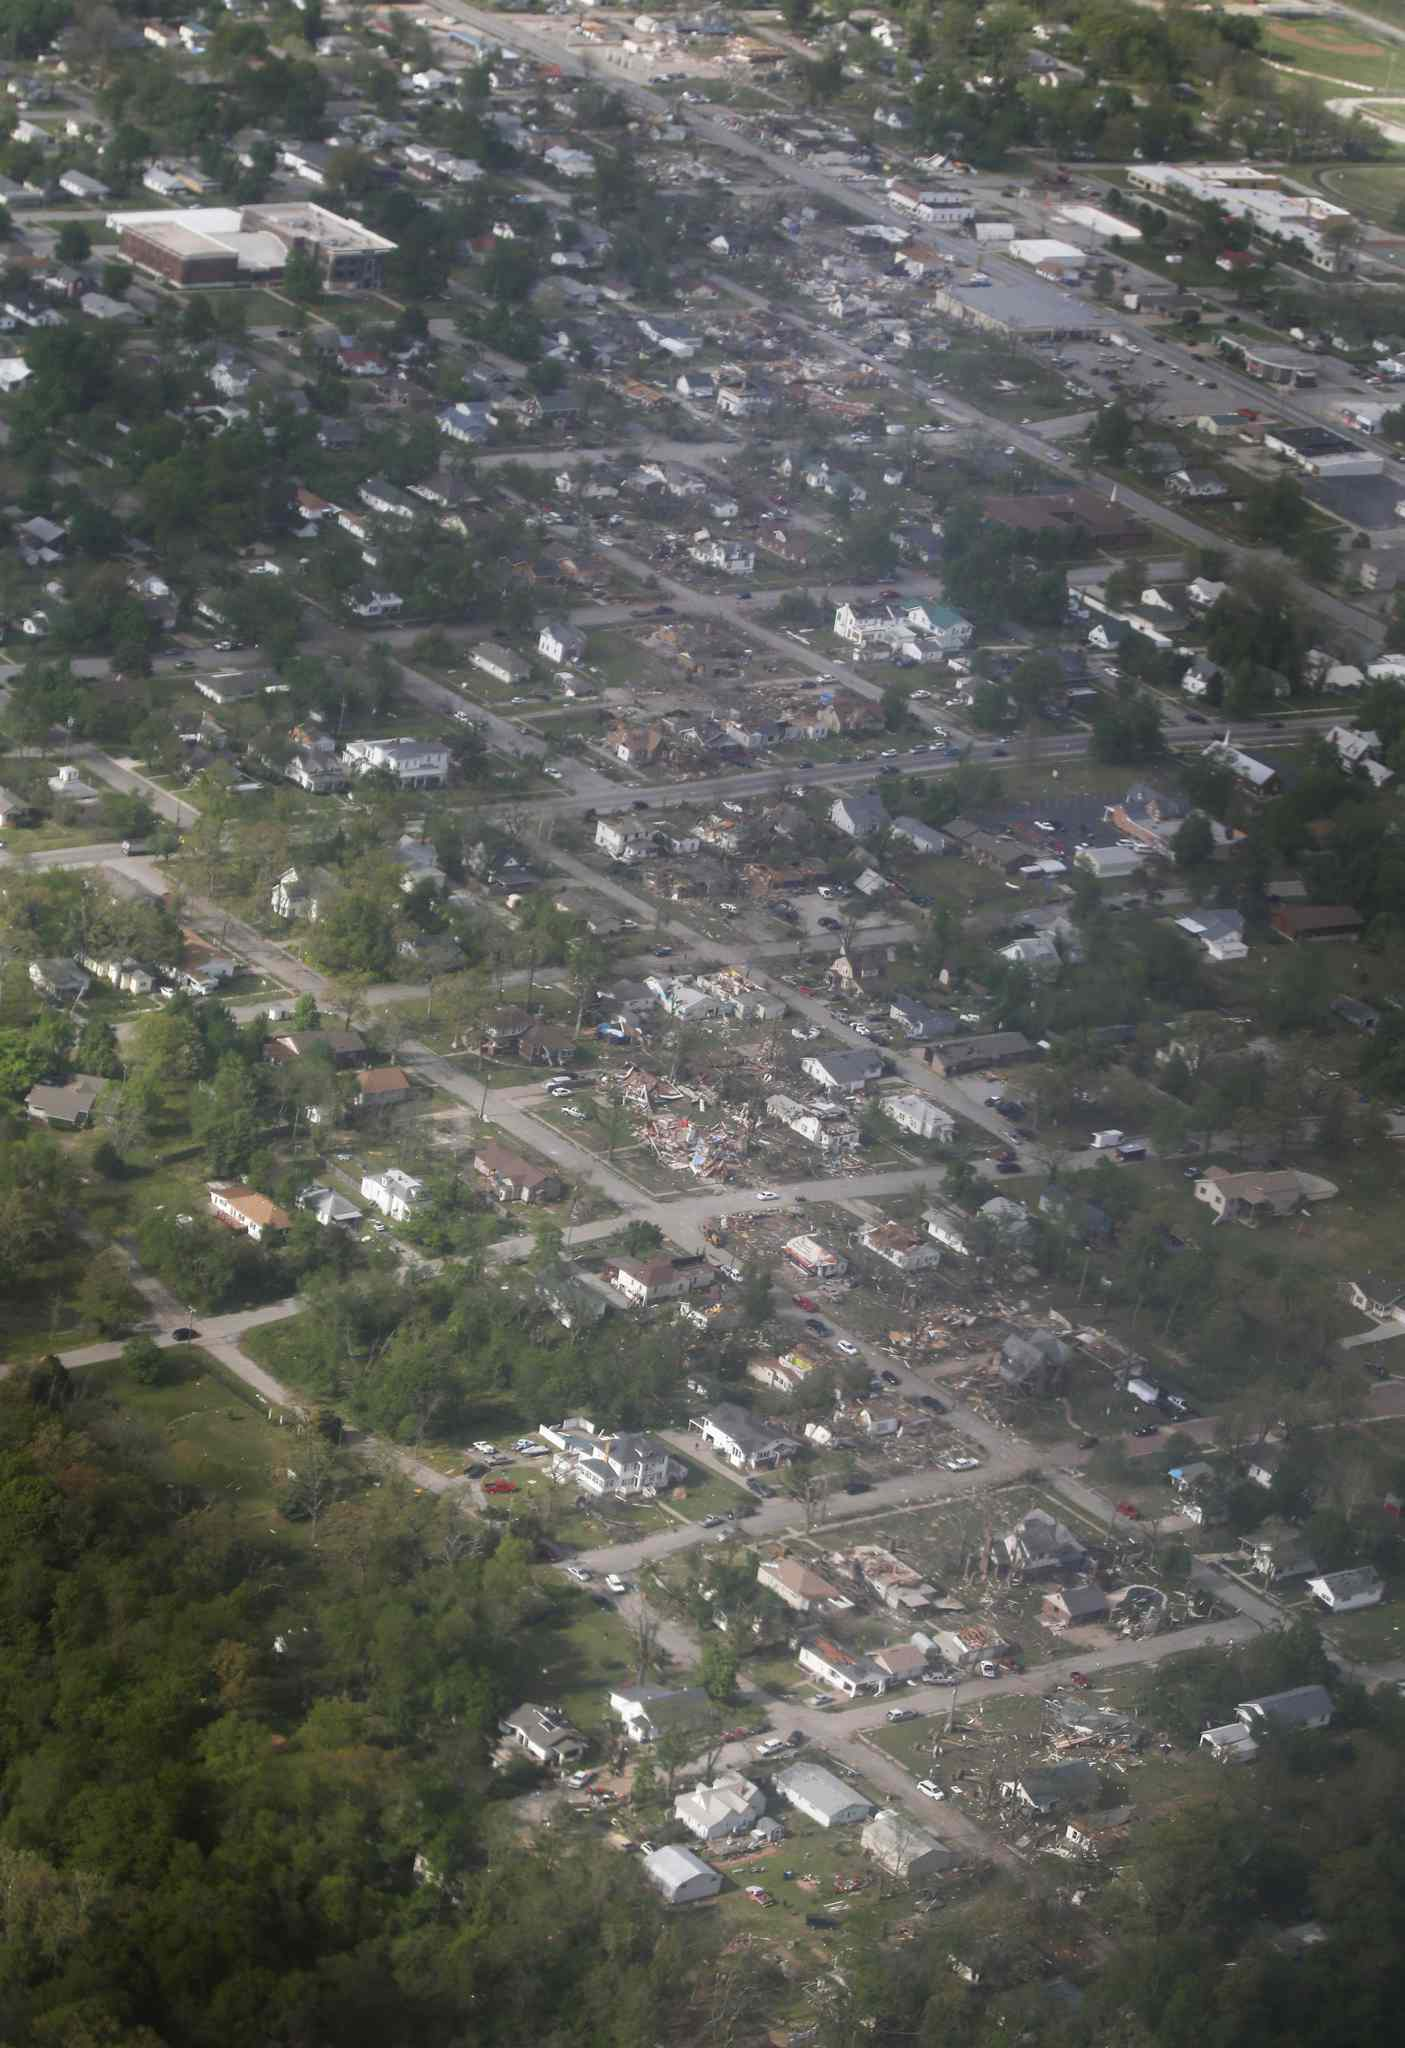 A tornado's path is seen in an aerial photo made over Baxter Springs, Kan.